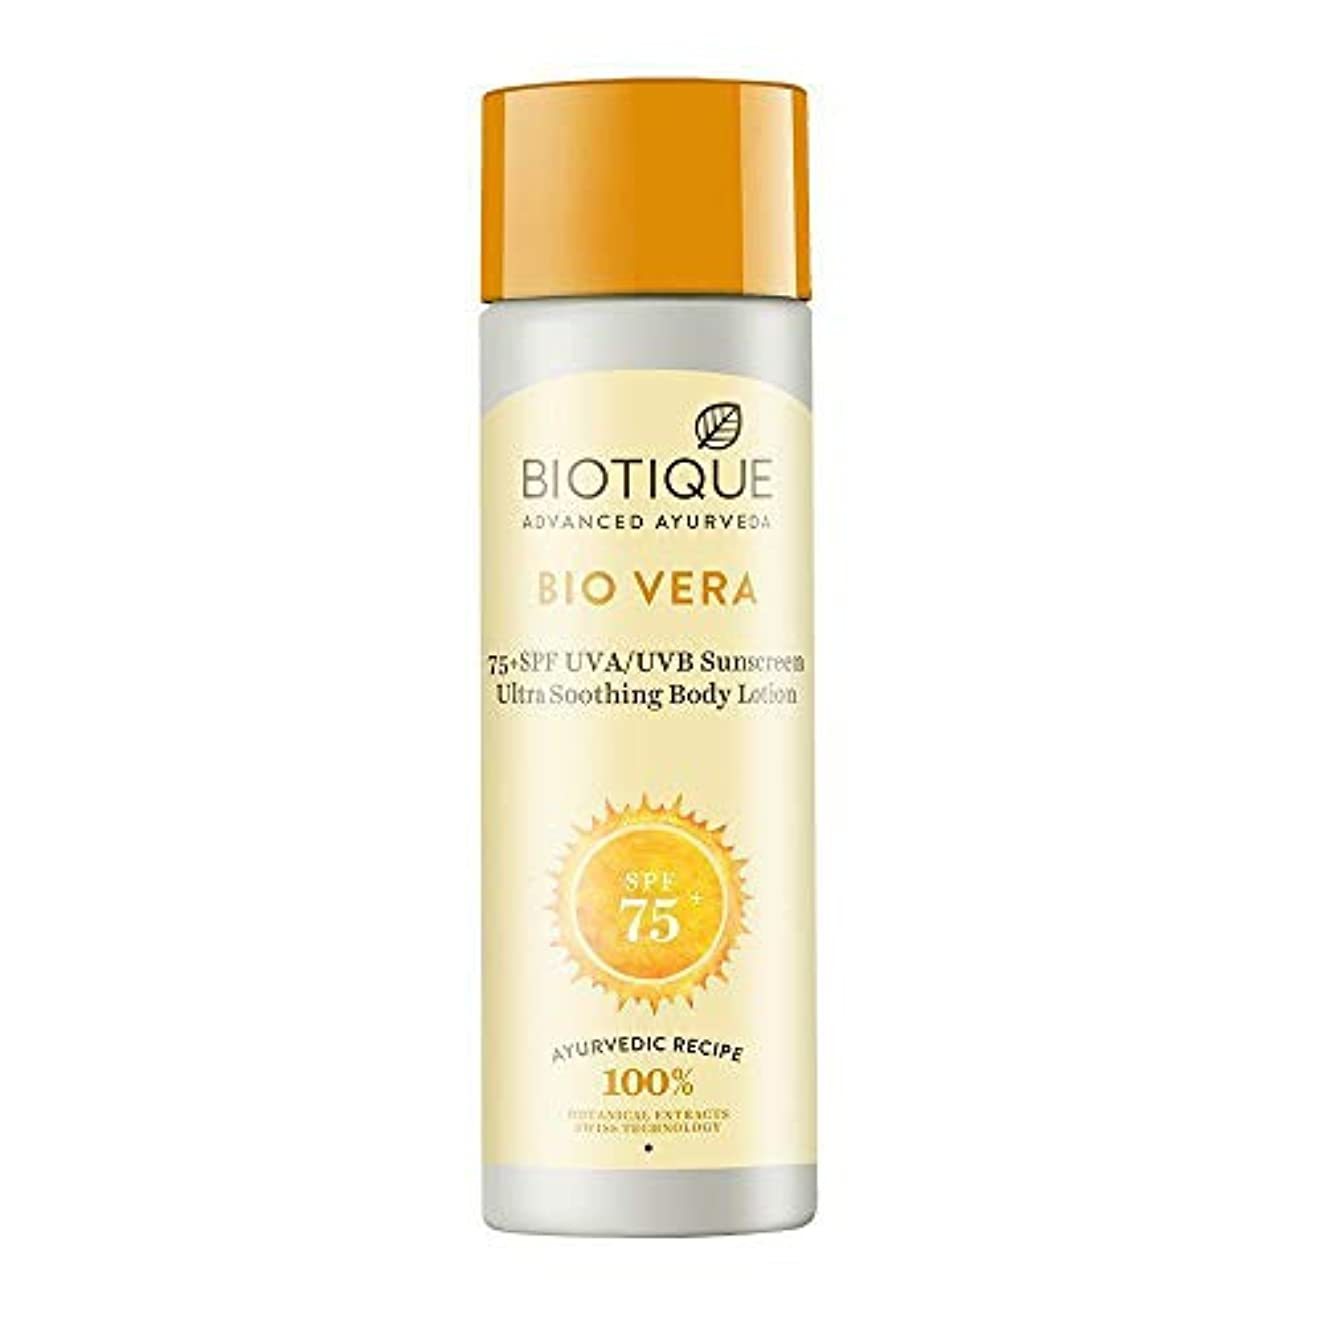 グラフ展示会馬鹿BIOTIQUE BIO VERA SPF 75+ UVA/UVB SUNSCREEN ULTRA SOOTHING LOTION - 190ml BIOTIQUE BIO VERA SPF 75+ UVA/UVBサンスクリーンウルトラソーティングローション